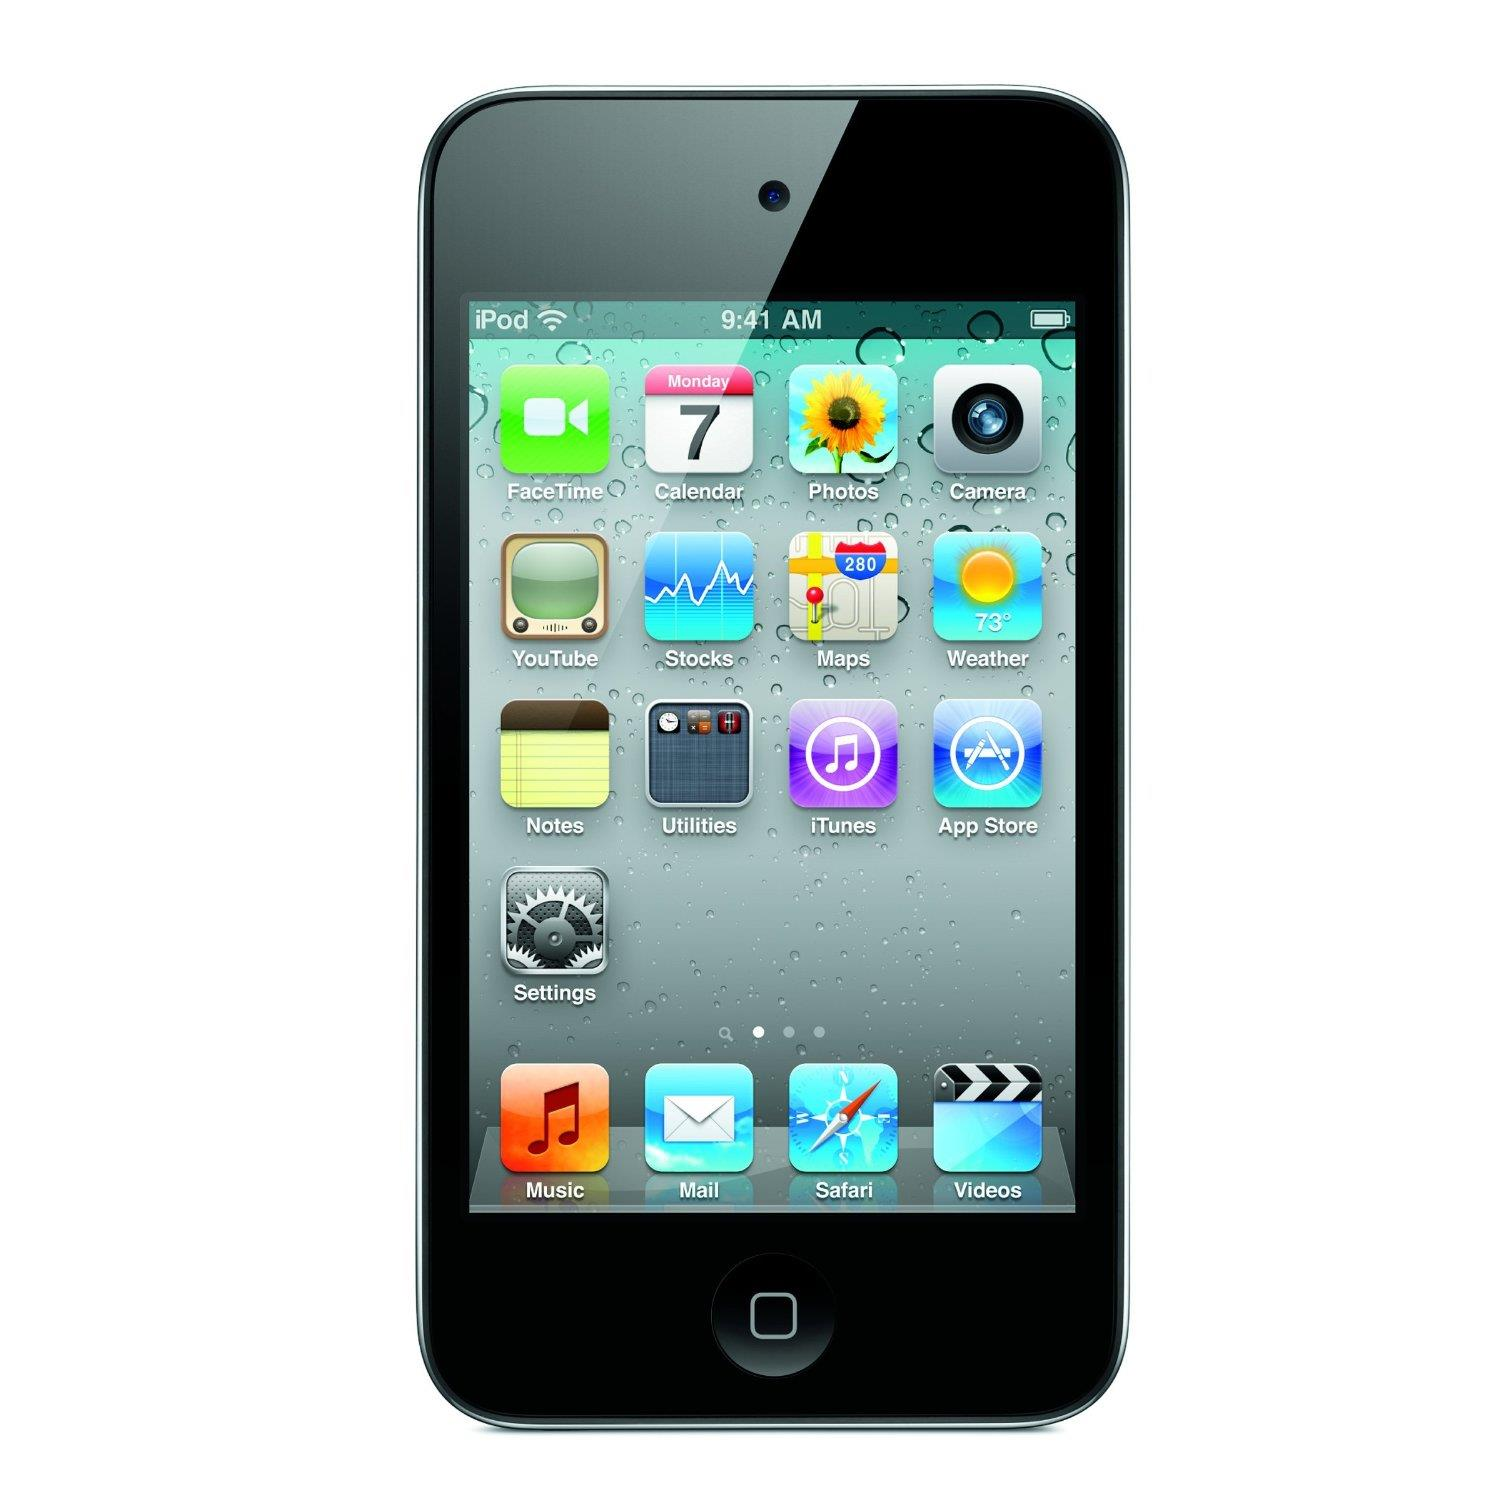 Apple iPod Touch 64Gb 4th Gen (Black) + Free Proporta Antimicrobial Silicone Case worth £9.95